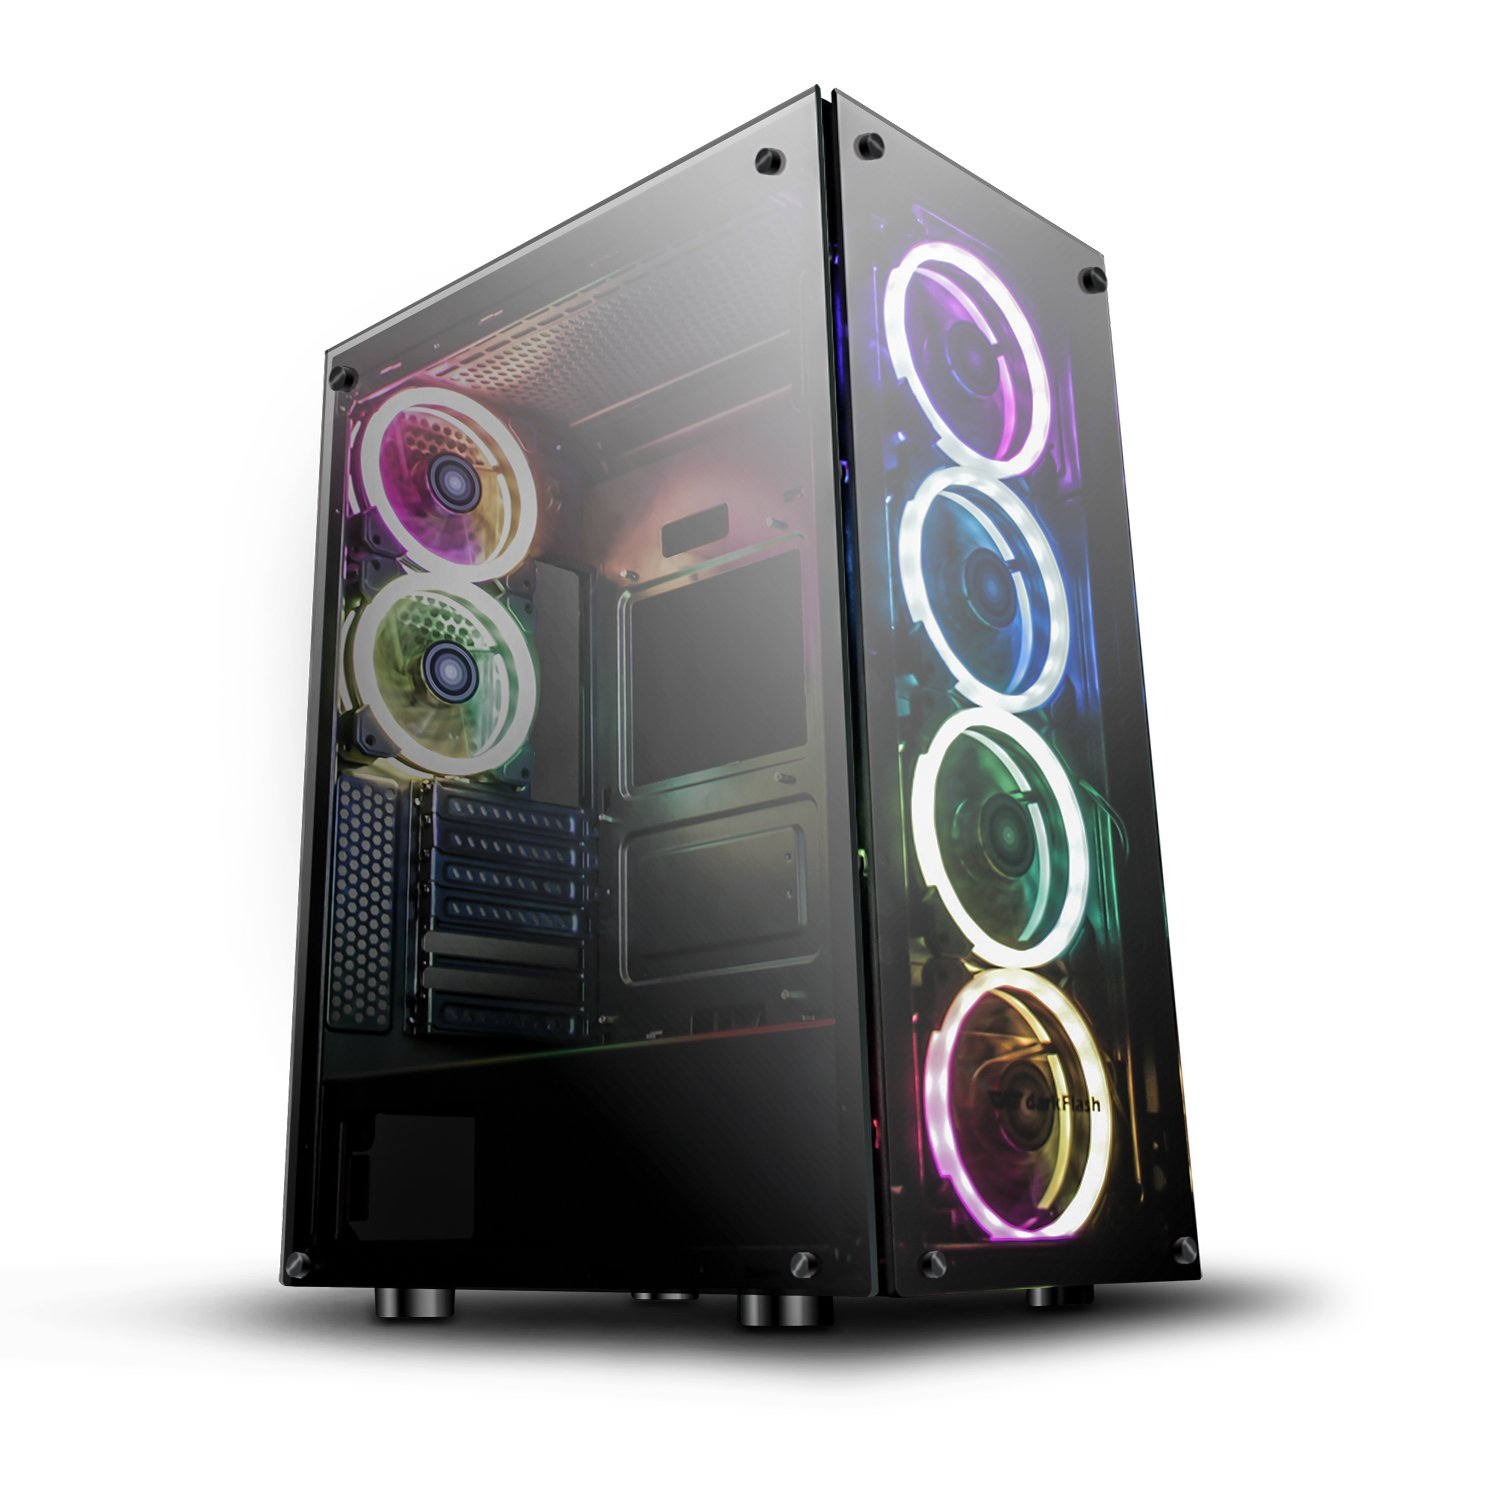 darkFlash Phantom Black ATX Mid-Tower Desktop Computer Gaming Case USB 3.0 Ports Tempered Glass Windows with 6pcs 120mm LED DR12 RGB Fans Pre-Installed